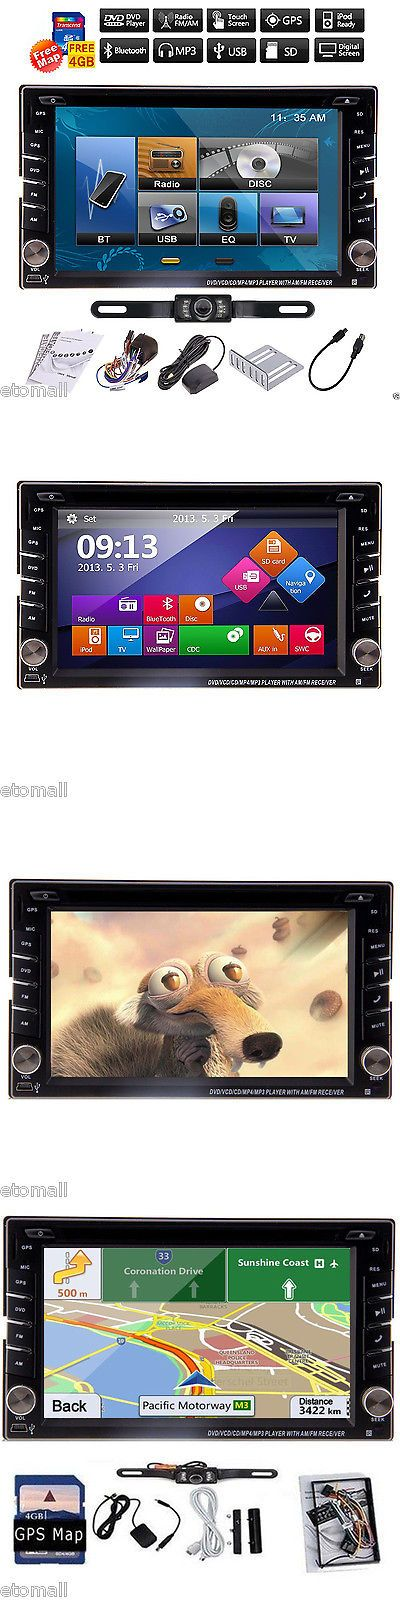 Vehicle Electronics And GPS: Gps Navi Hd Double 2Din Car Stereo Dvd Radio Player Bt Ipod Mp3+Backup Camera BUY IT NOW ONLY: $124.96